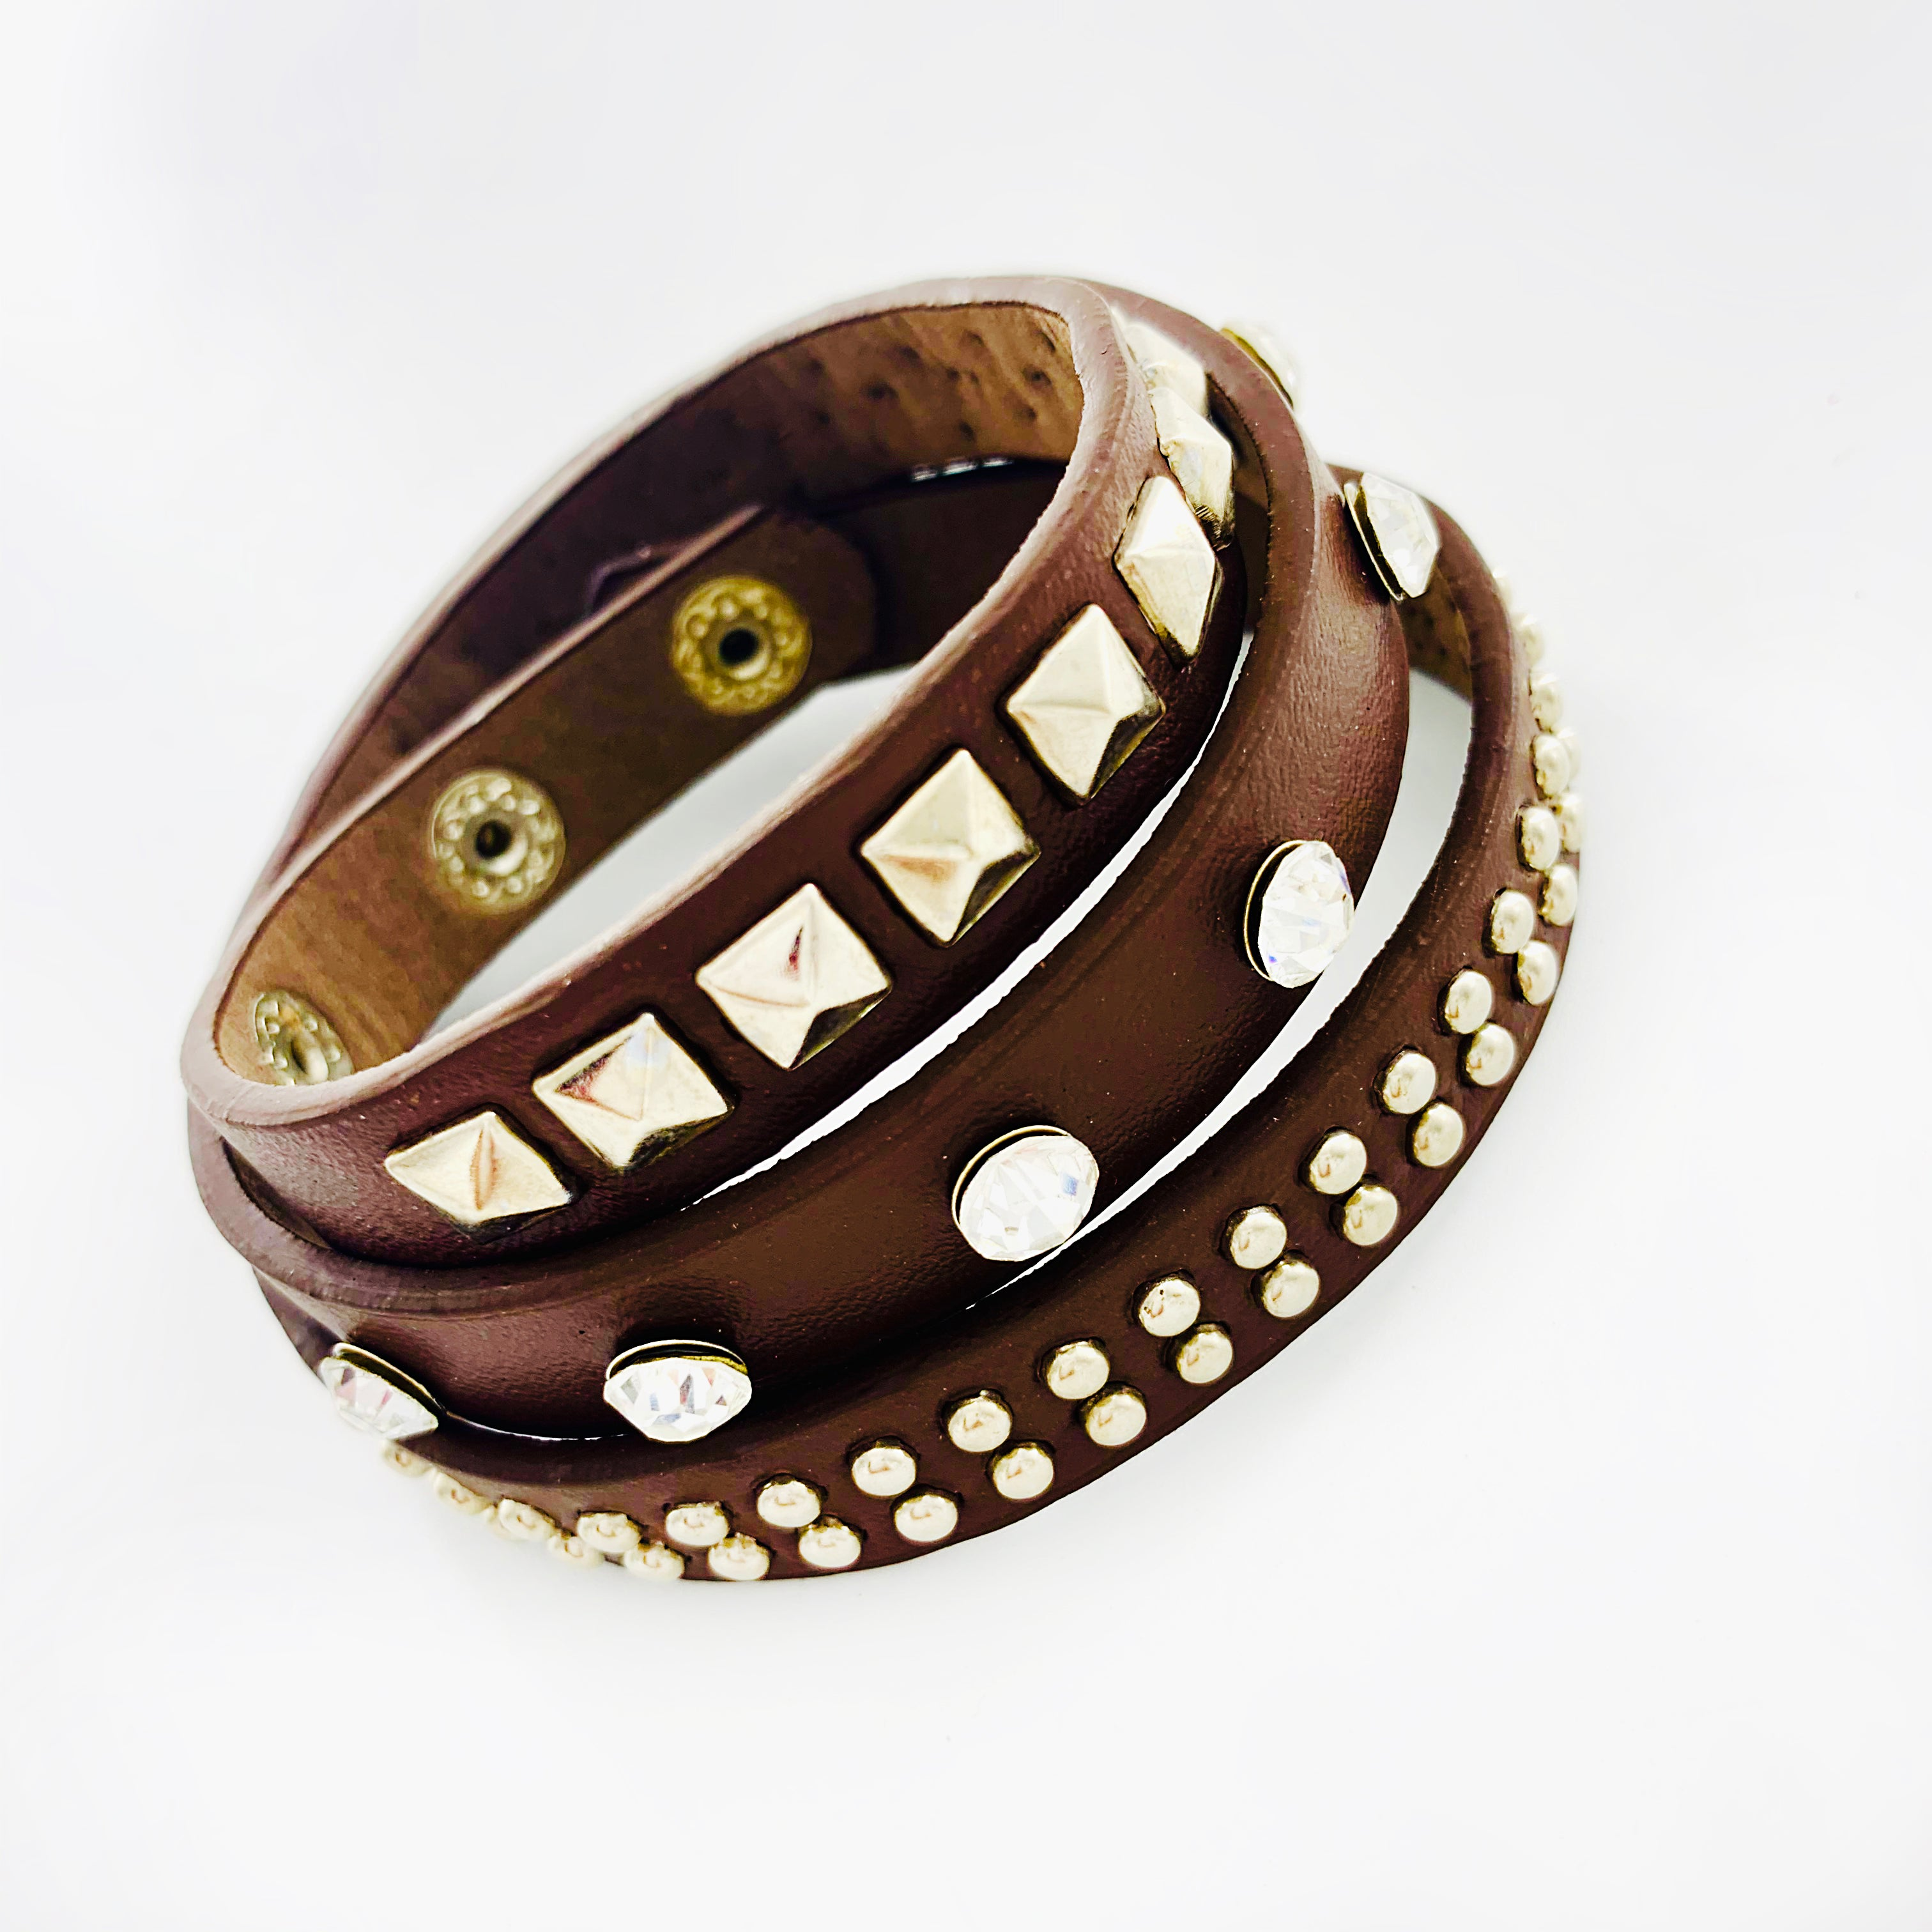 Brown leather wrap bands with stones and studs